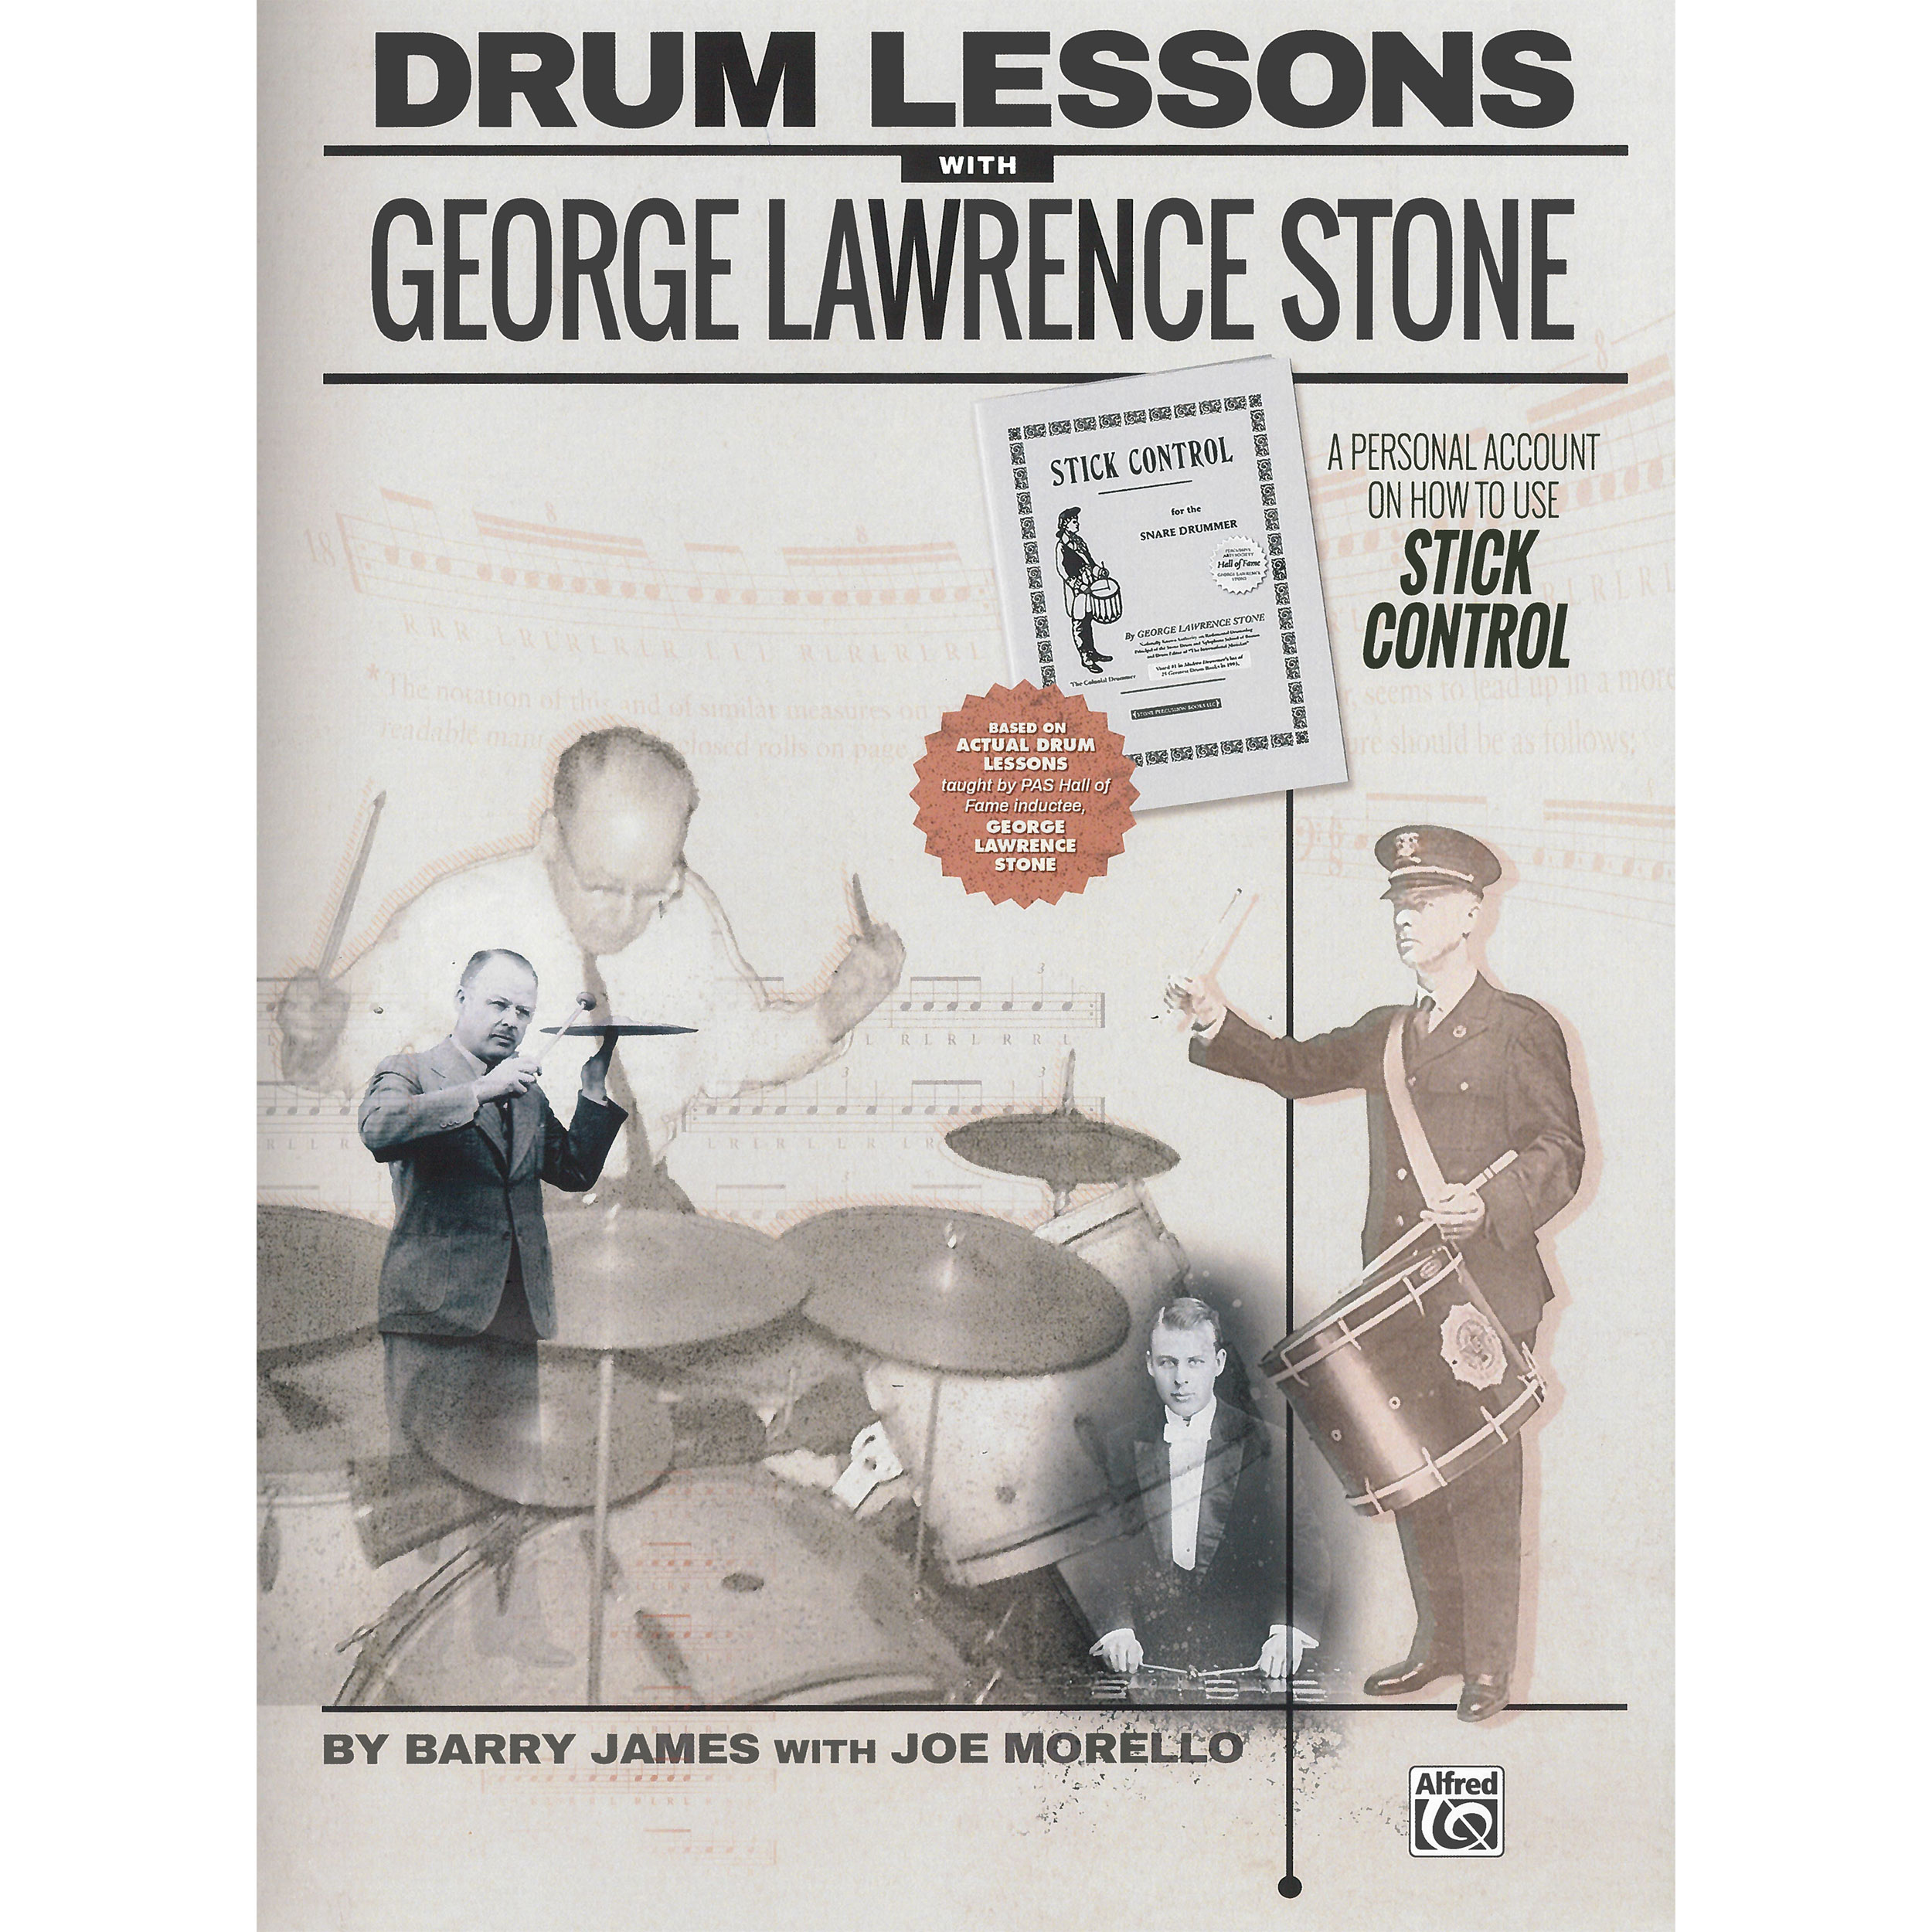 Drum Lessons with George Lawrence Stone by Barry James and Joe Morello